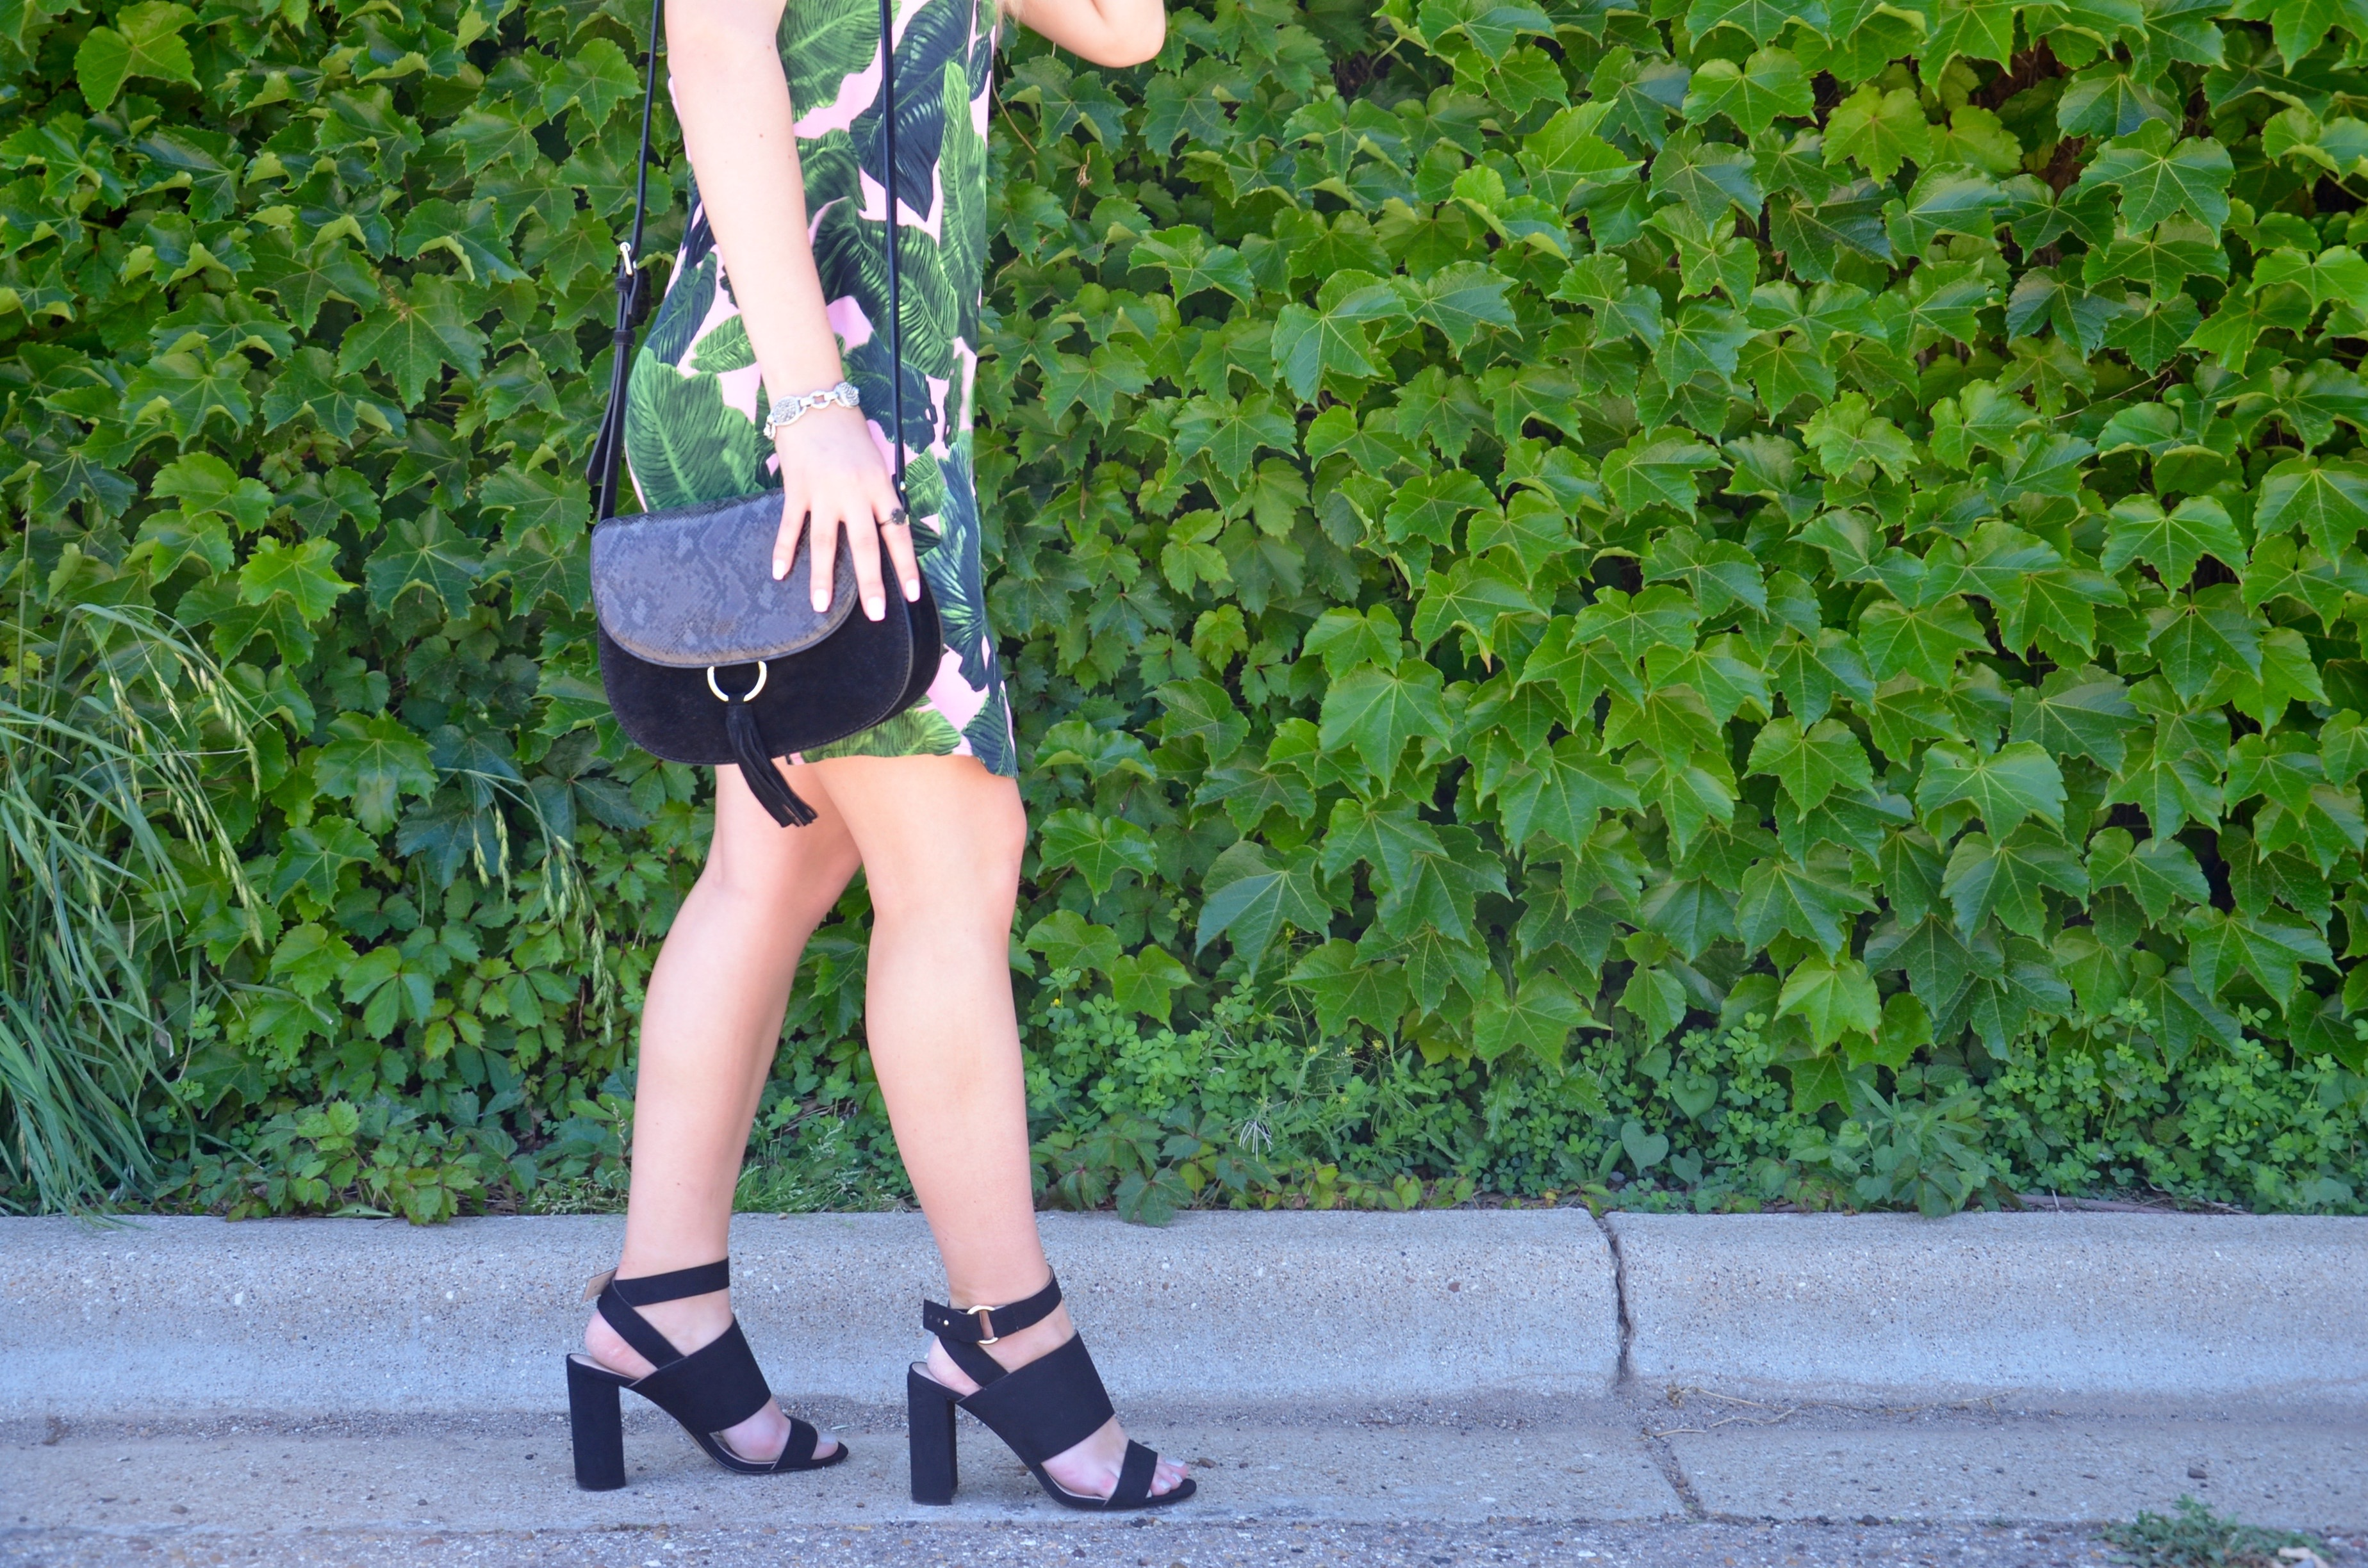 tiptop black heels and saddle bag